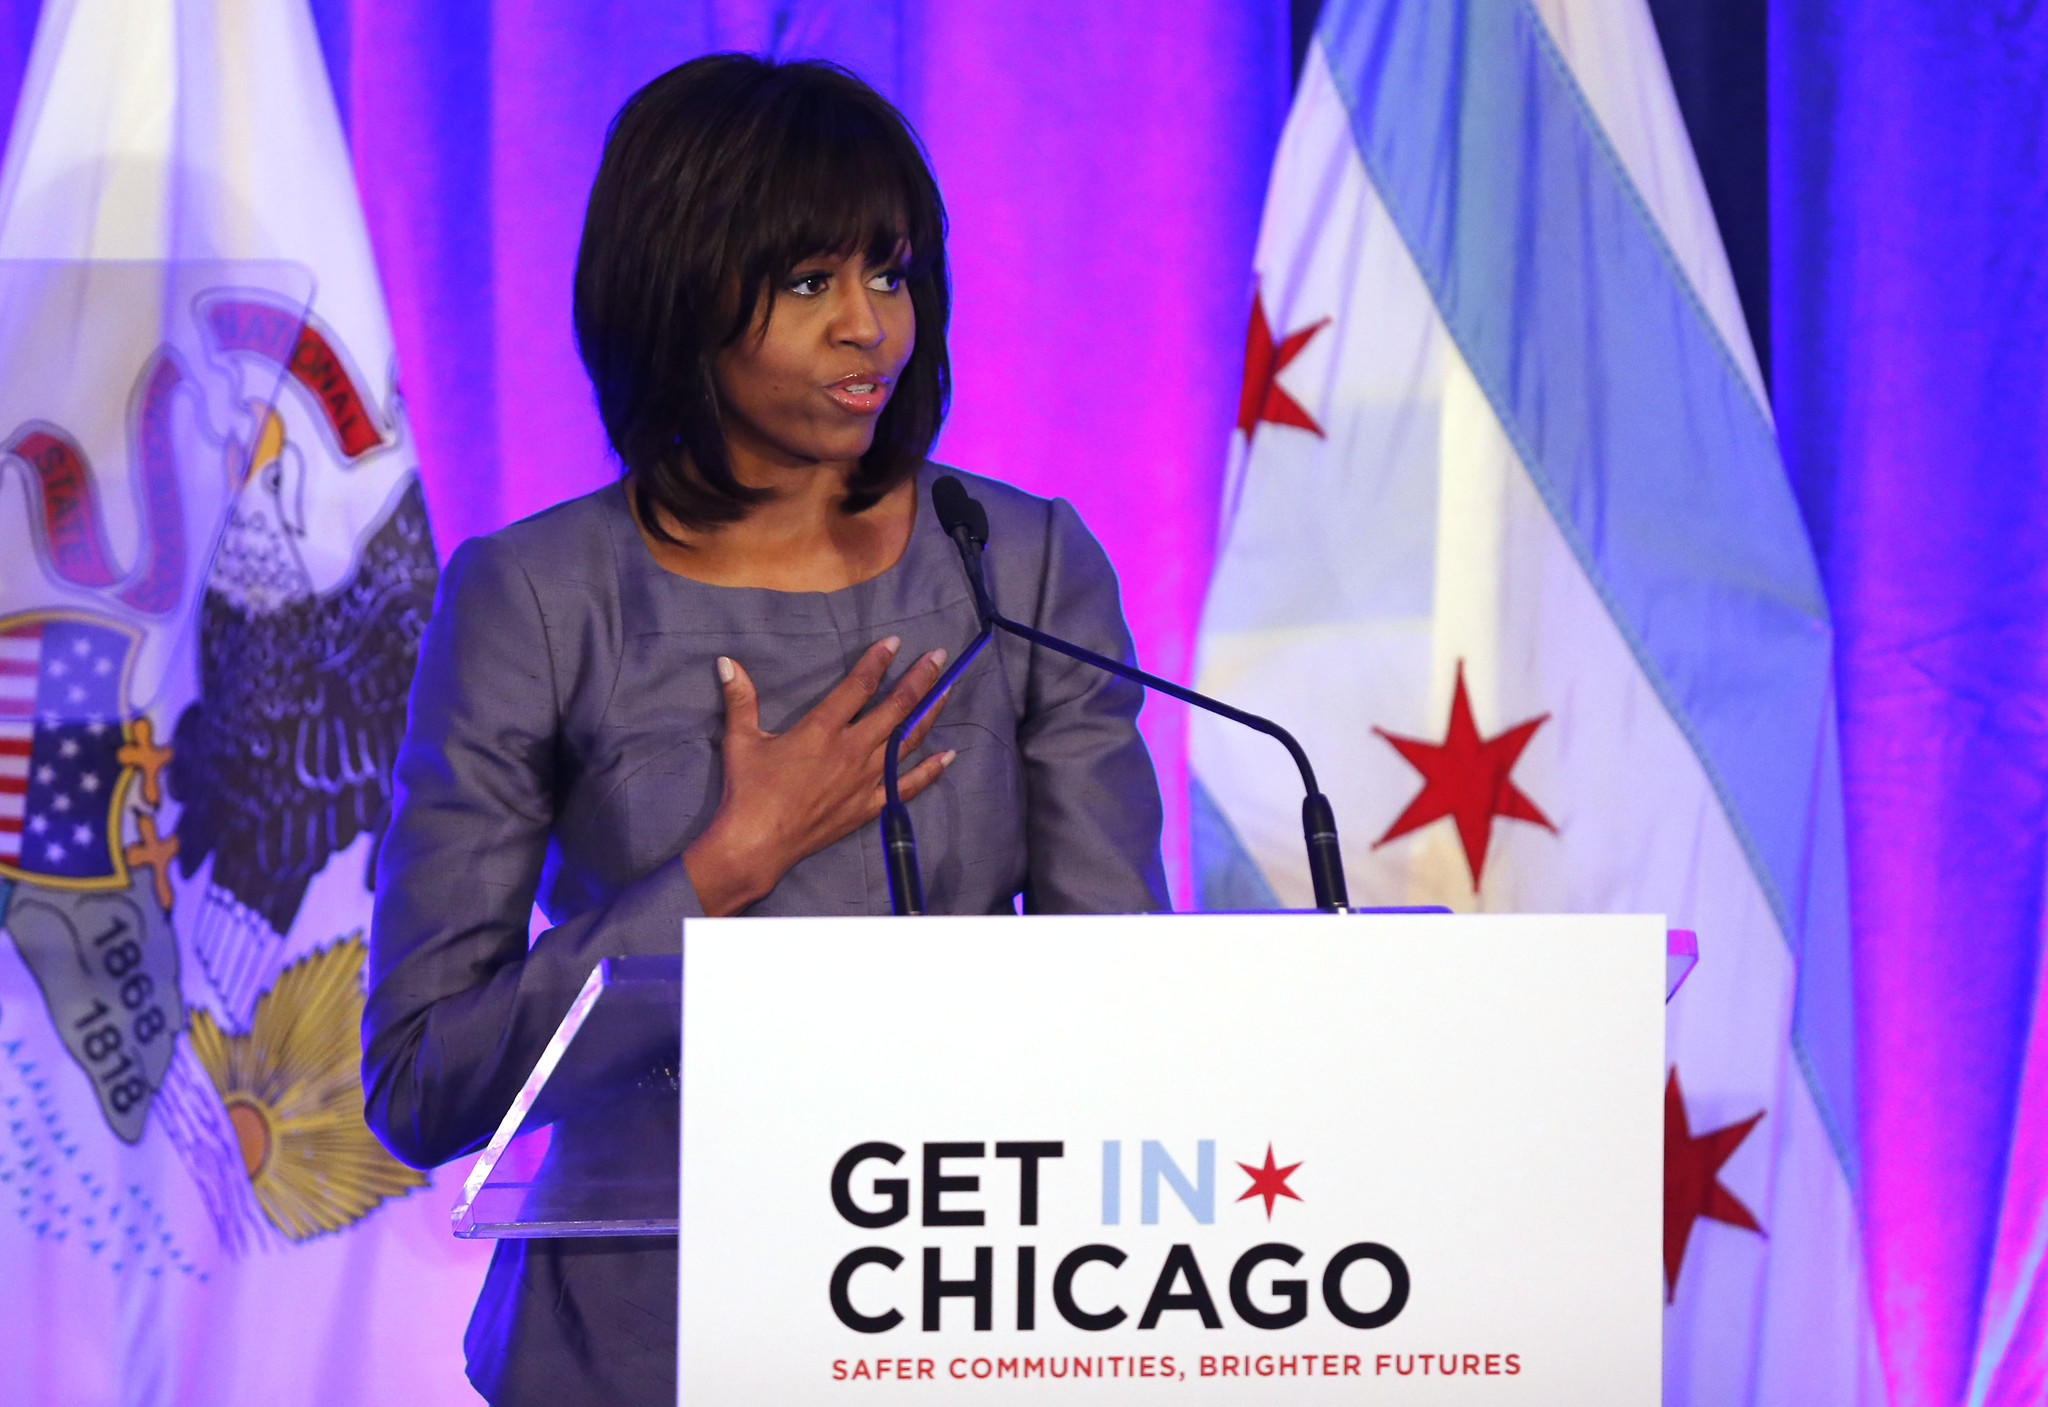 First lady Michelle Obama speaks at a luncheon at The Chicago Hilton in April, 2013.